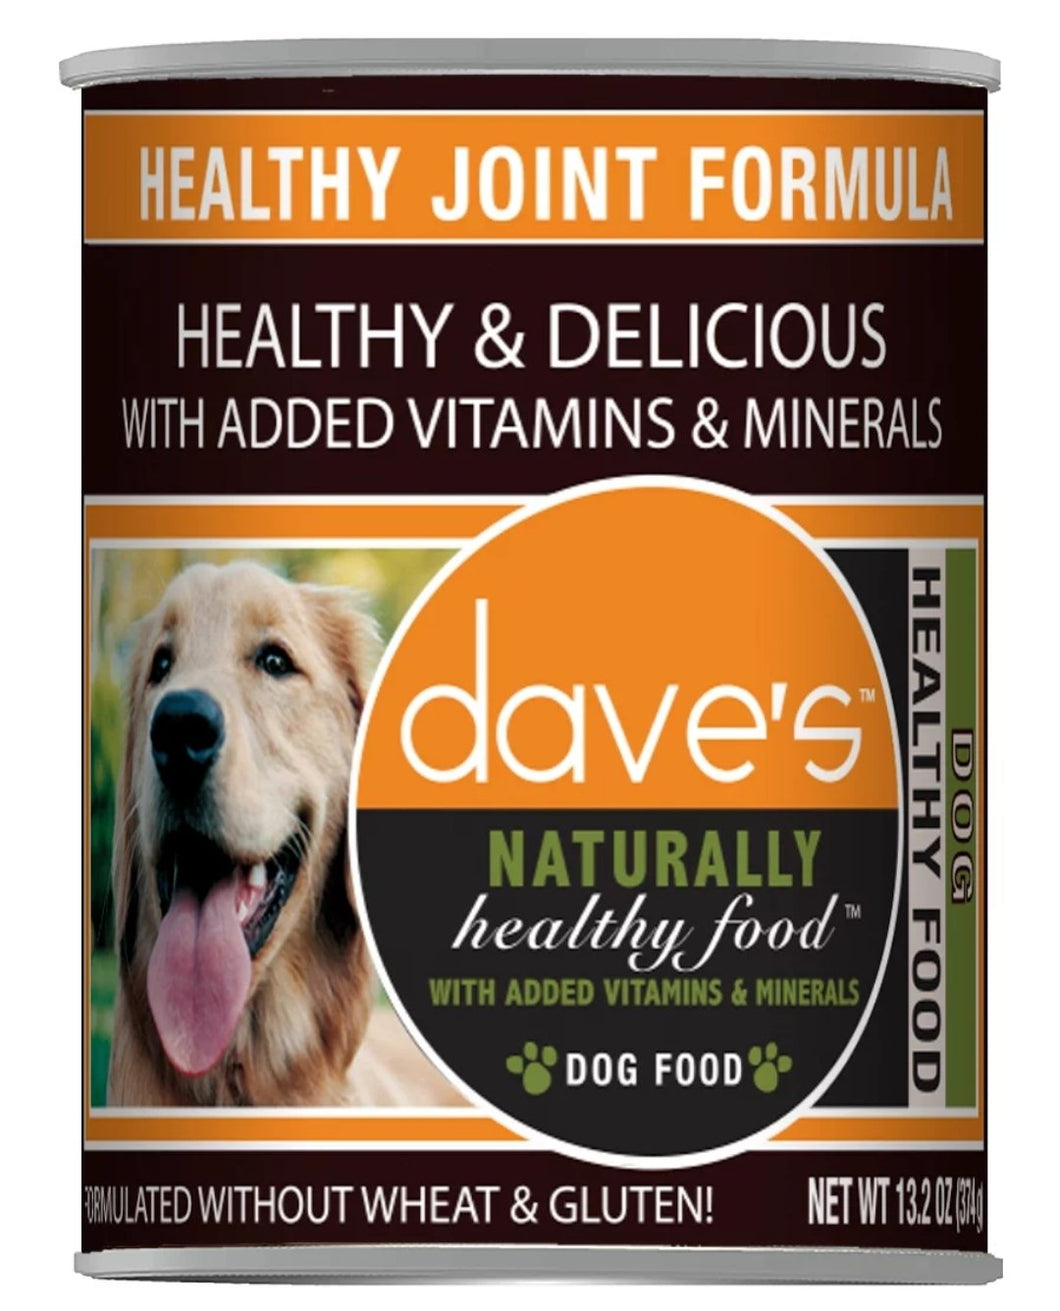 dave's Healthy Joint Formula 13oz, Dog